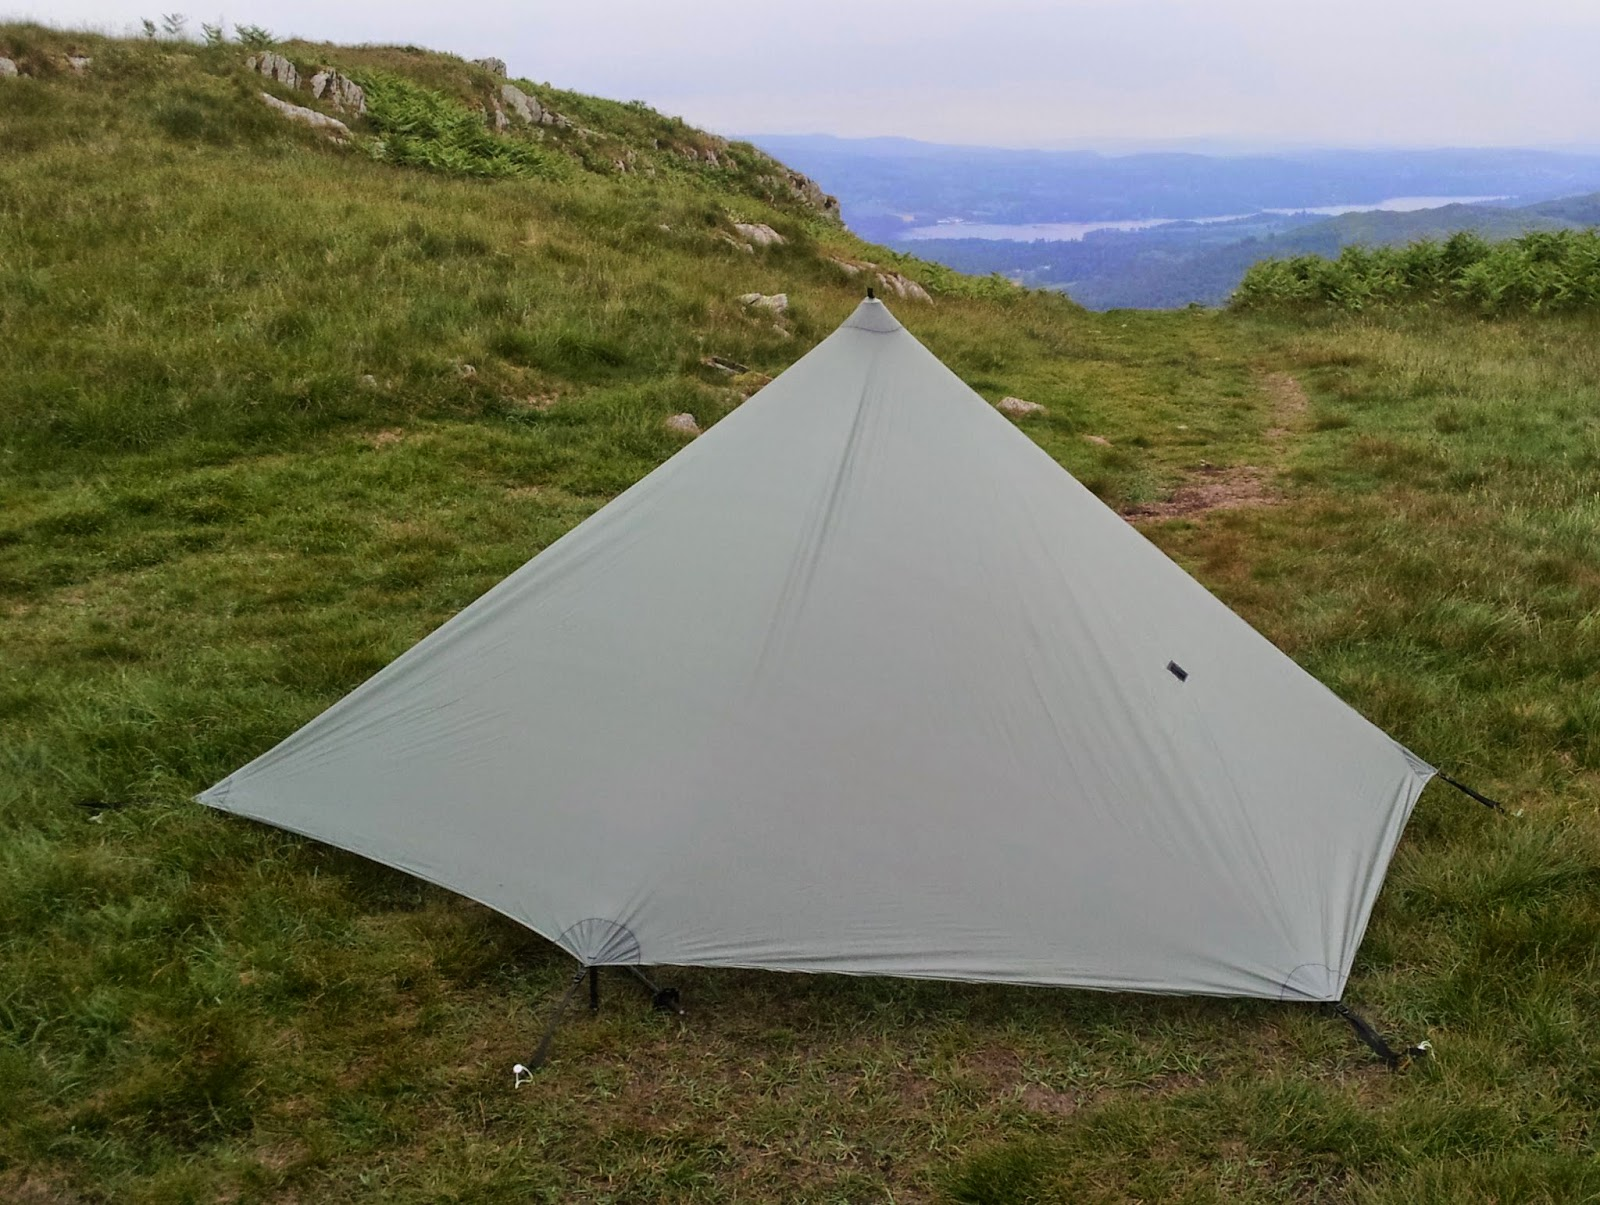 It was actually raining when this pic was taken which I was pleased about! No leaks! This picture shows the  pointed  back which is similar to Colins ... & Alu0027s Outdoor World: Six Moon Designs Deschutes Tarp: A First Look